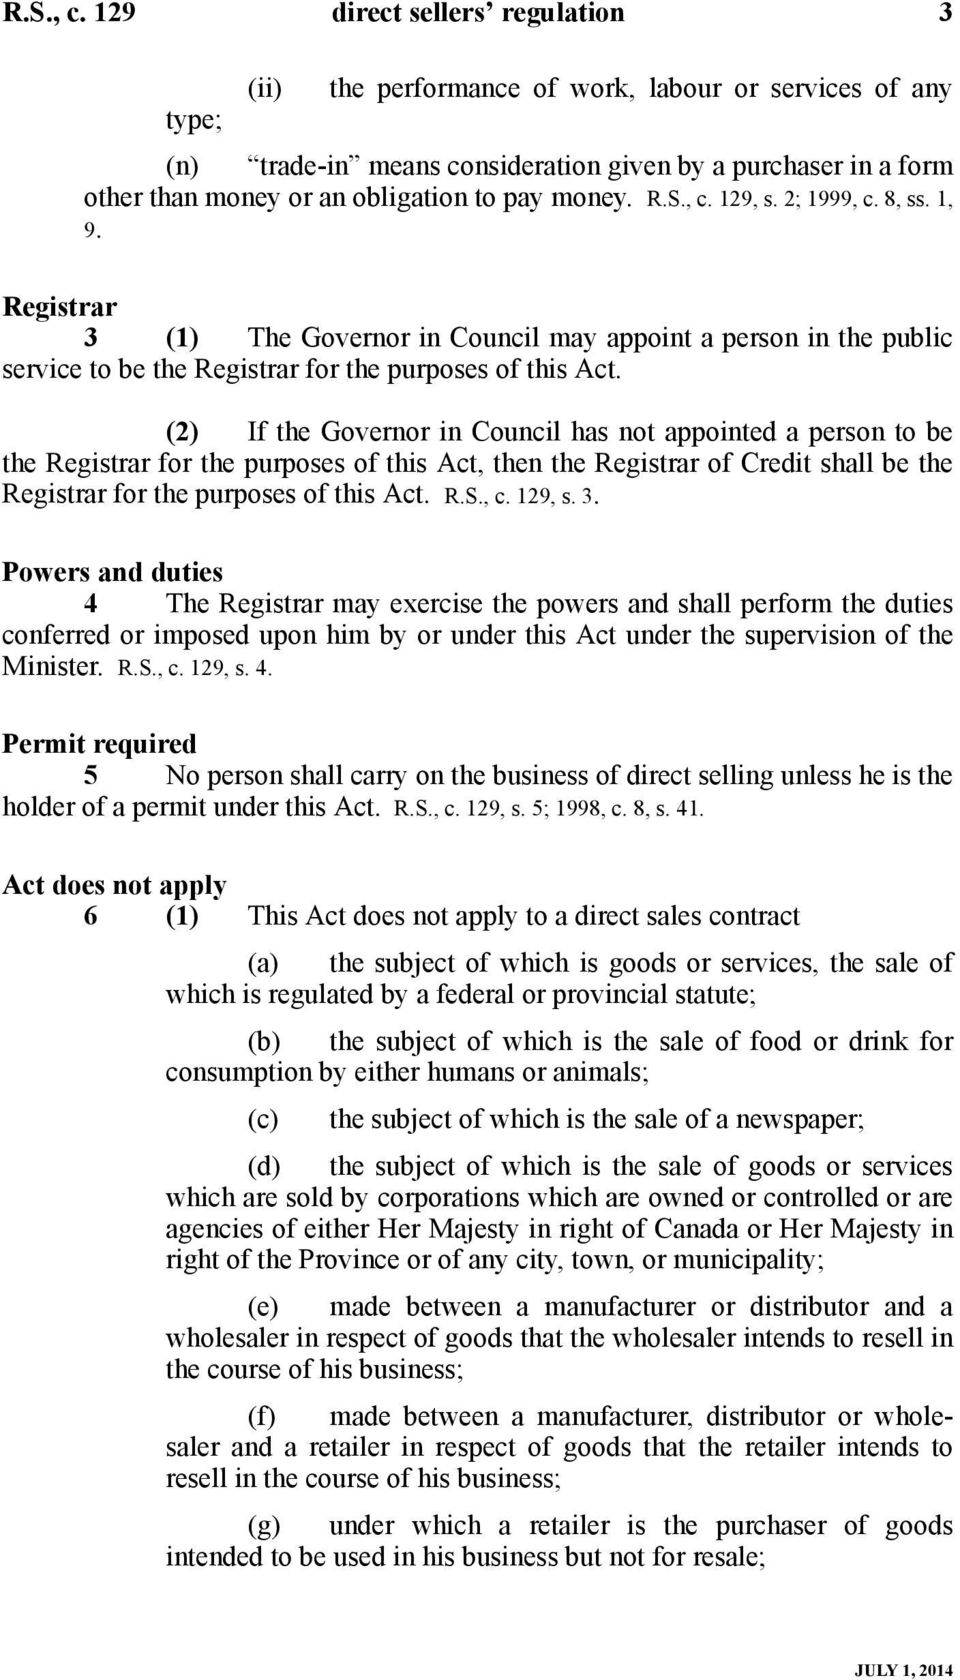 money.  129, s. 2; 1999, c. 8, ss. 1, 9. Registrar 3 (1) The Governor in Council may appoint a person in the public service to be the Registrar for the purposes of this Act.